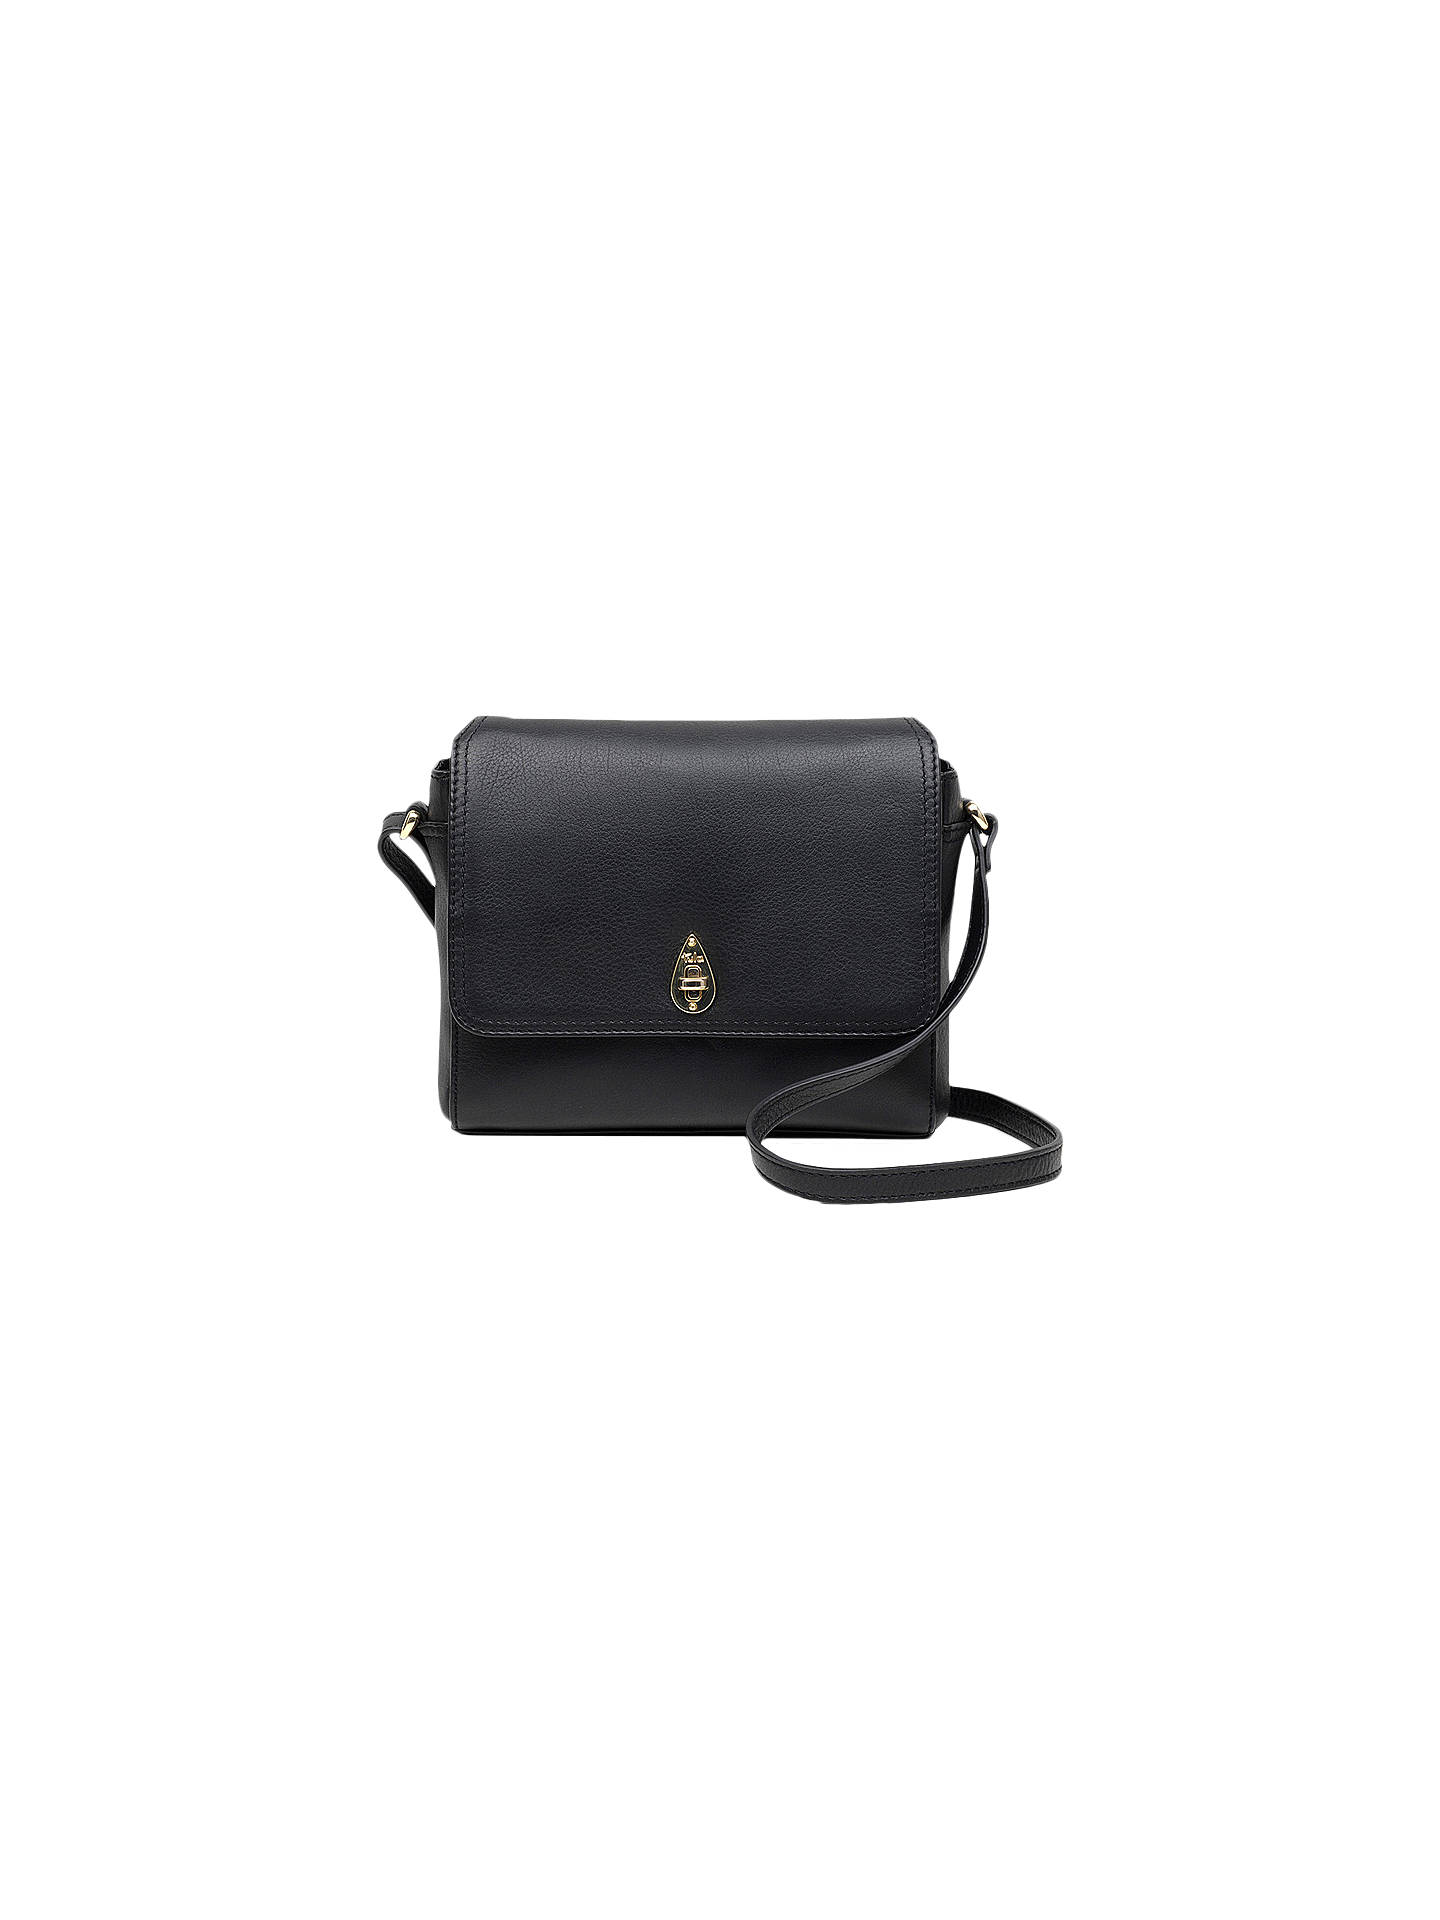 34b159fec933 Tula Originals Leather Small Flapover Cross Body Bag at John Lewis ...